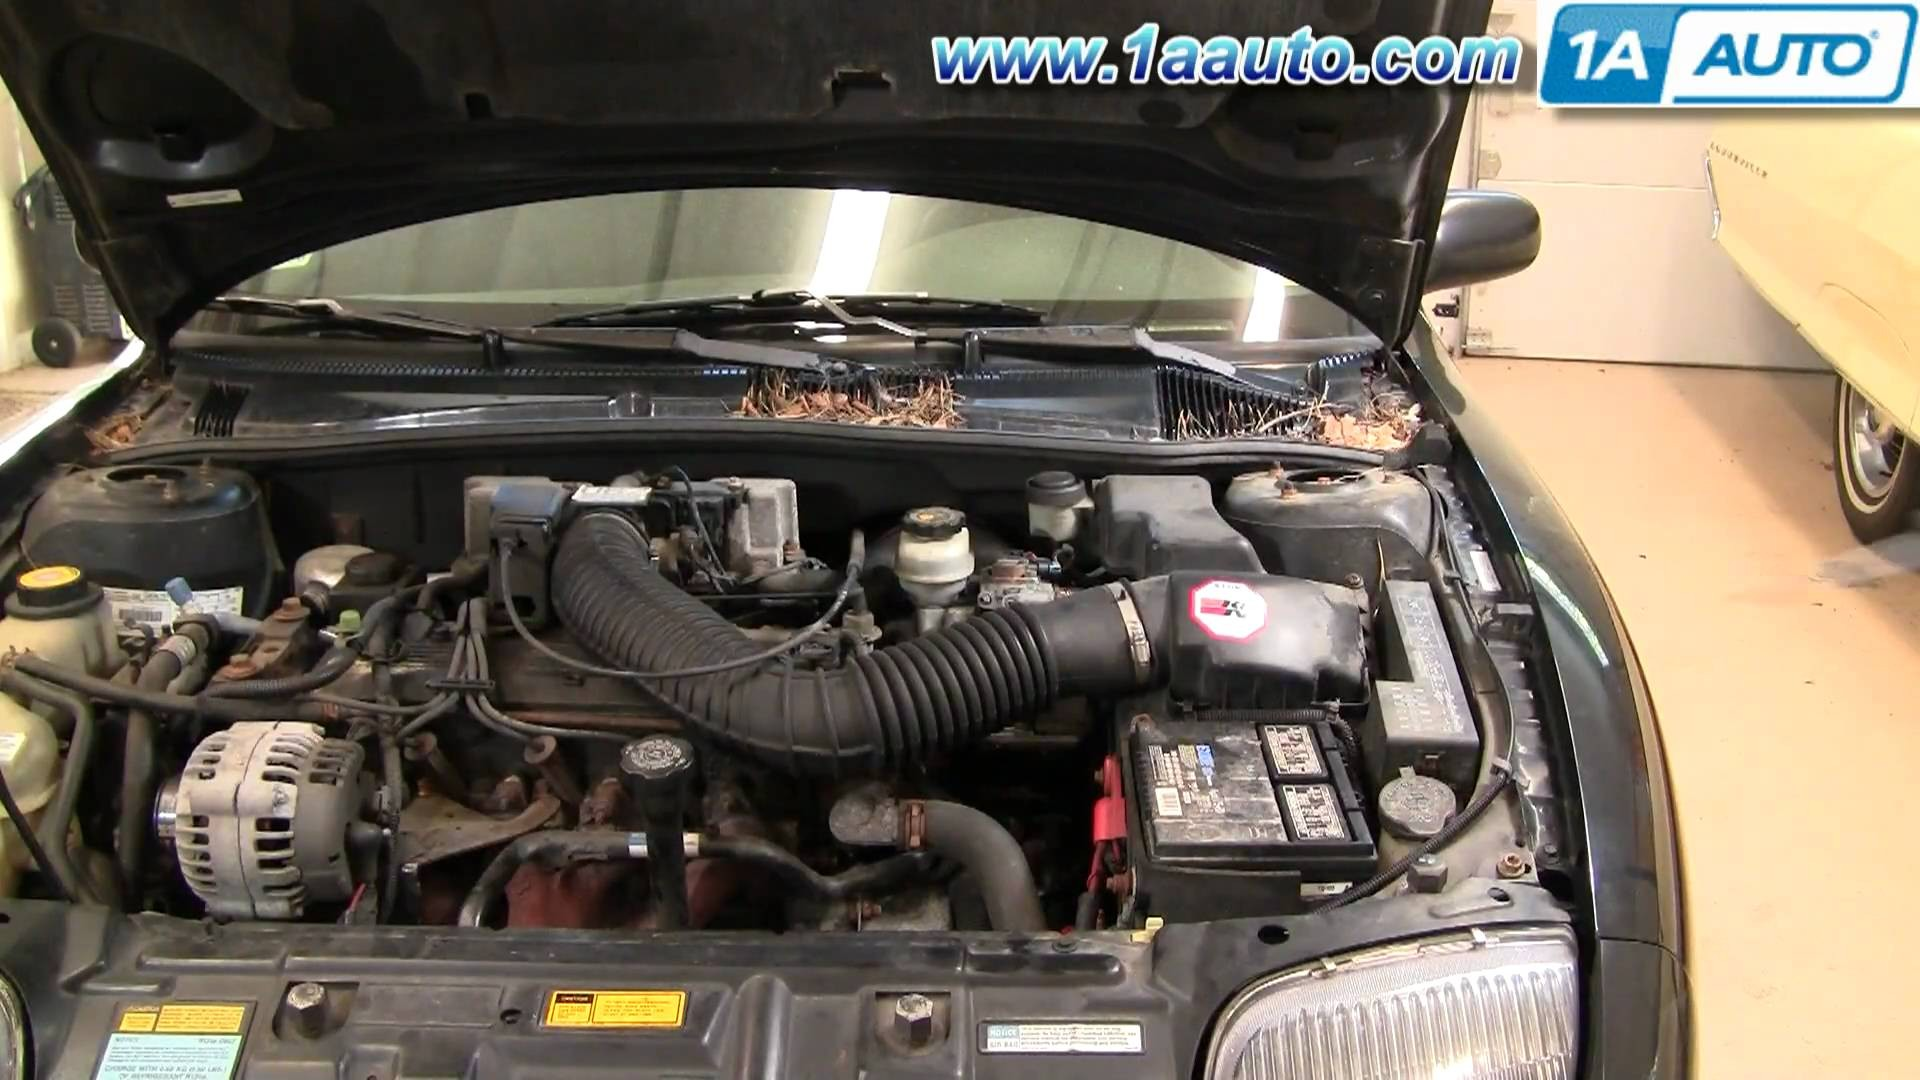 2000 pontiac sunfire 2 2 liter engine diagram